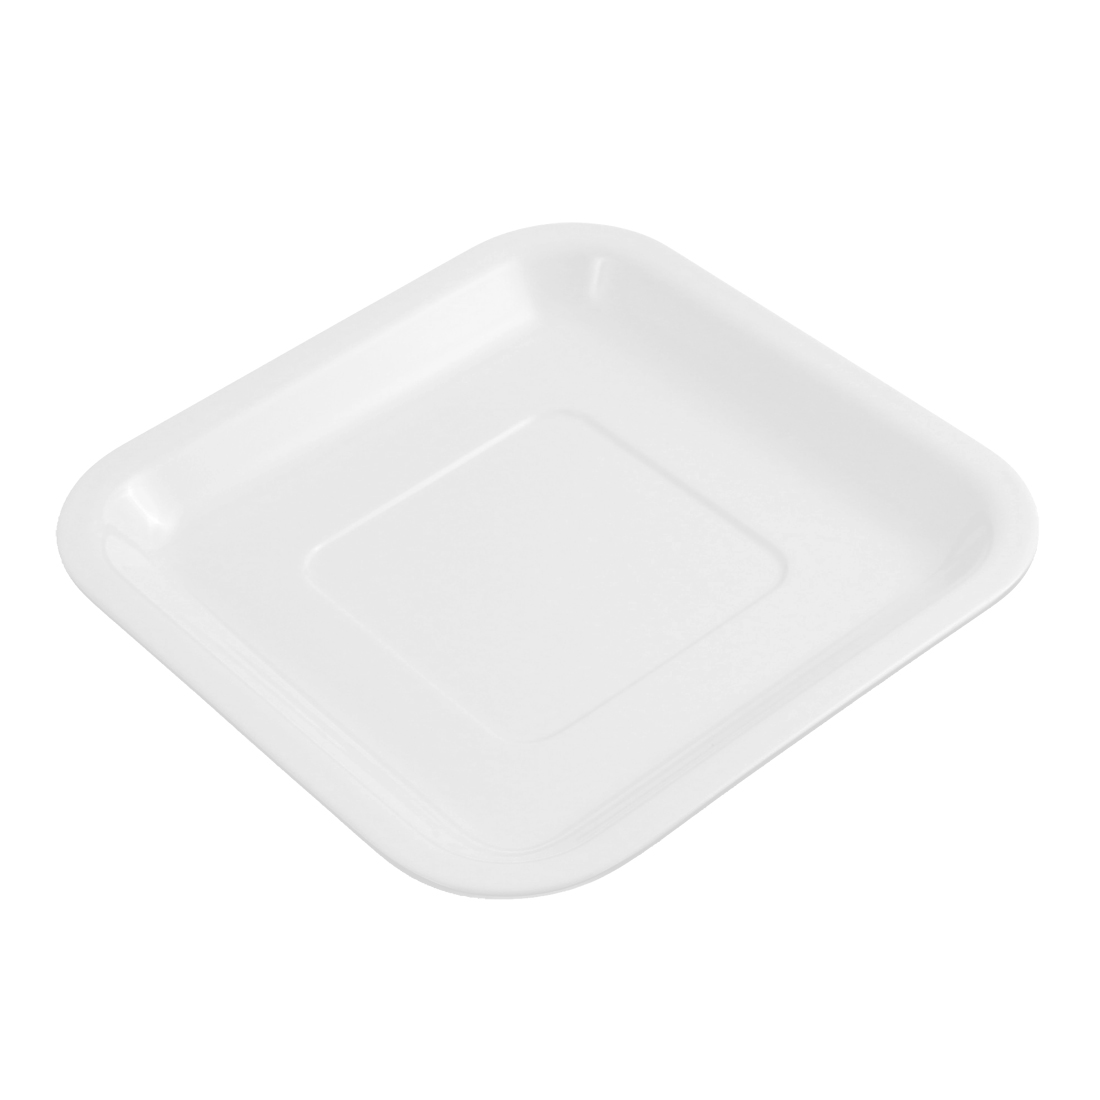 Plastic Square Dinner Food Dessert Plate Dish 6 Inch Length White